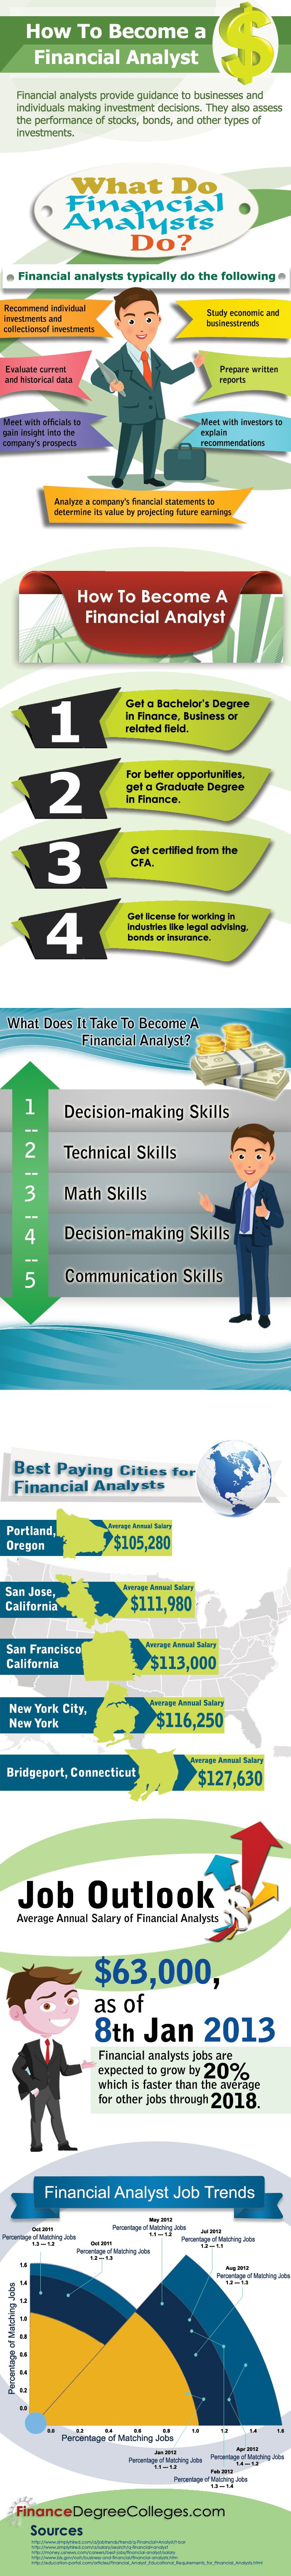 What Does It Take To Become a Financial Analyst?